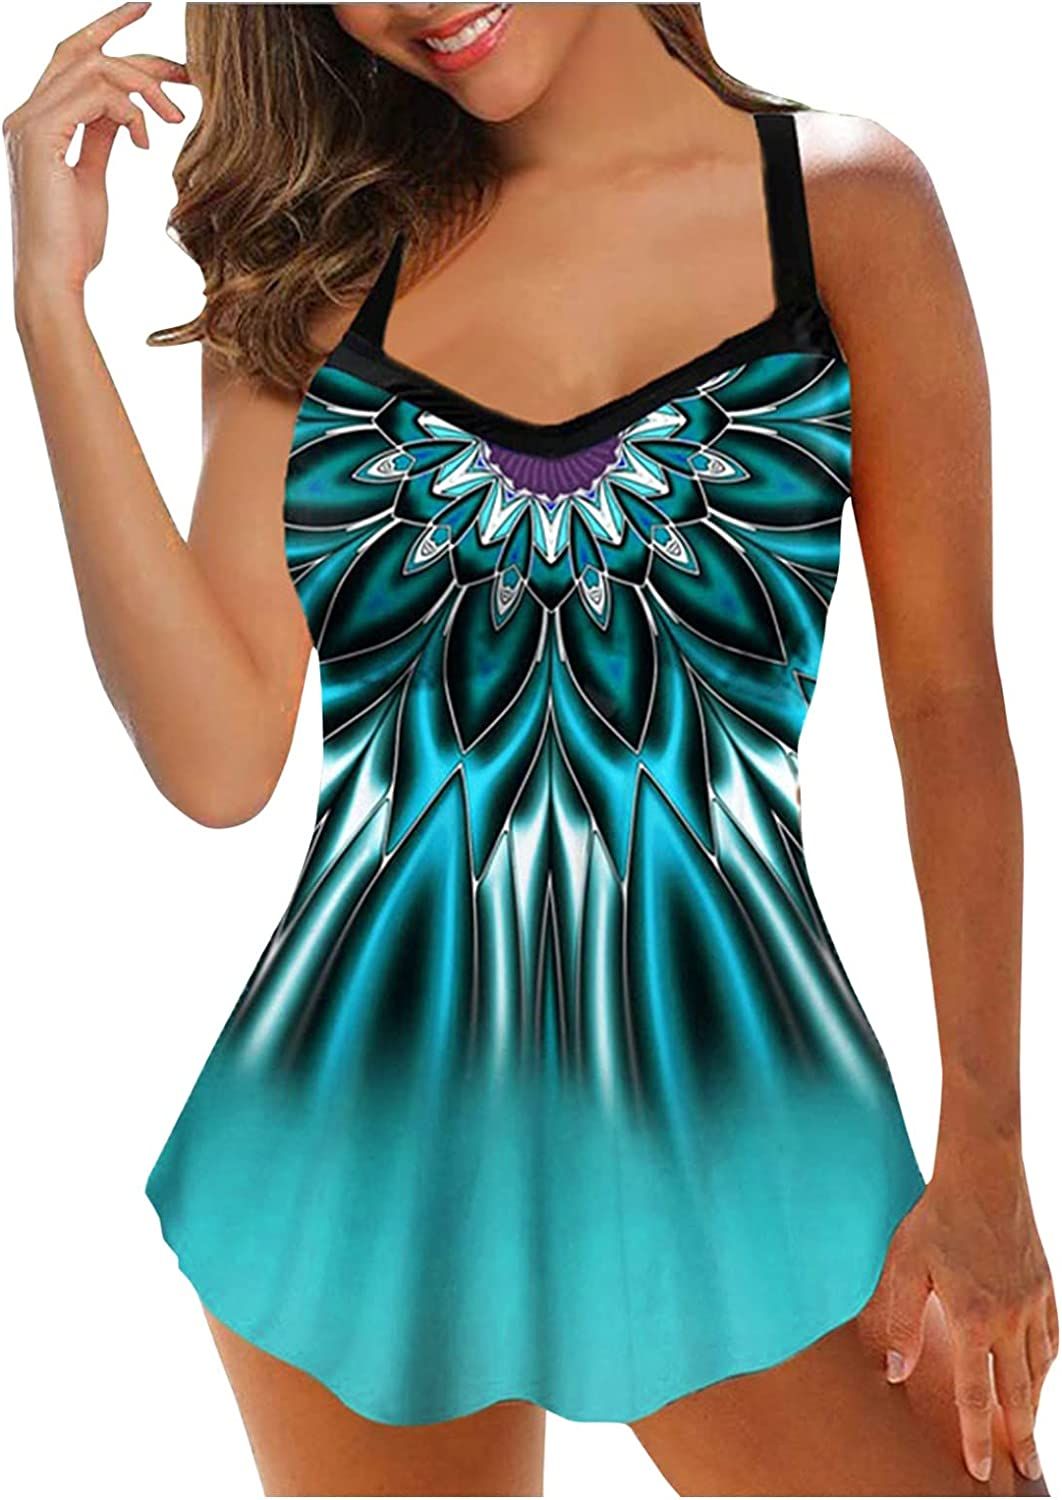 Tankini Swimsuits for Women Plus Size Swimwear Print Strappy Swimdress Tops with Boyshorts Two Piece Bathing Suits